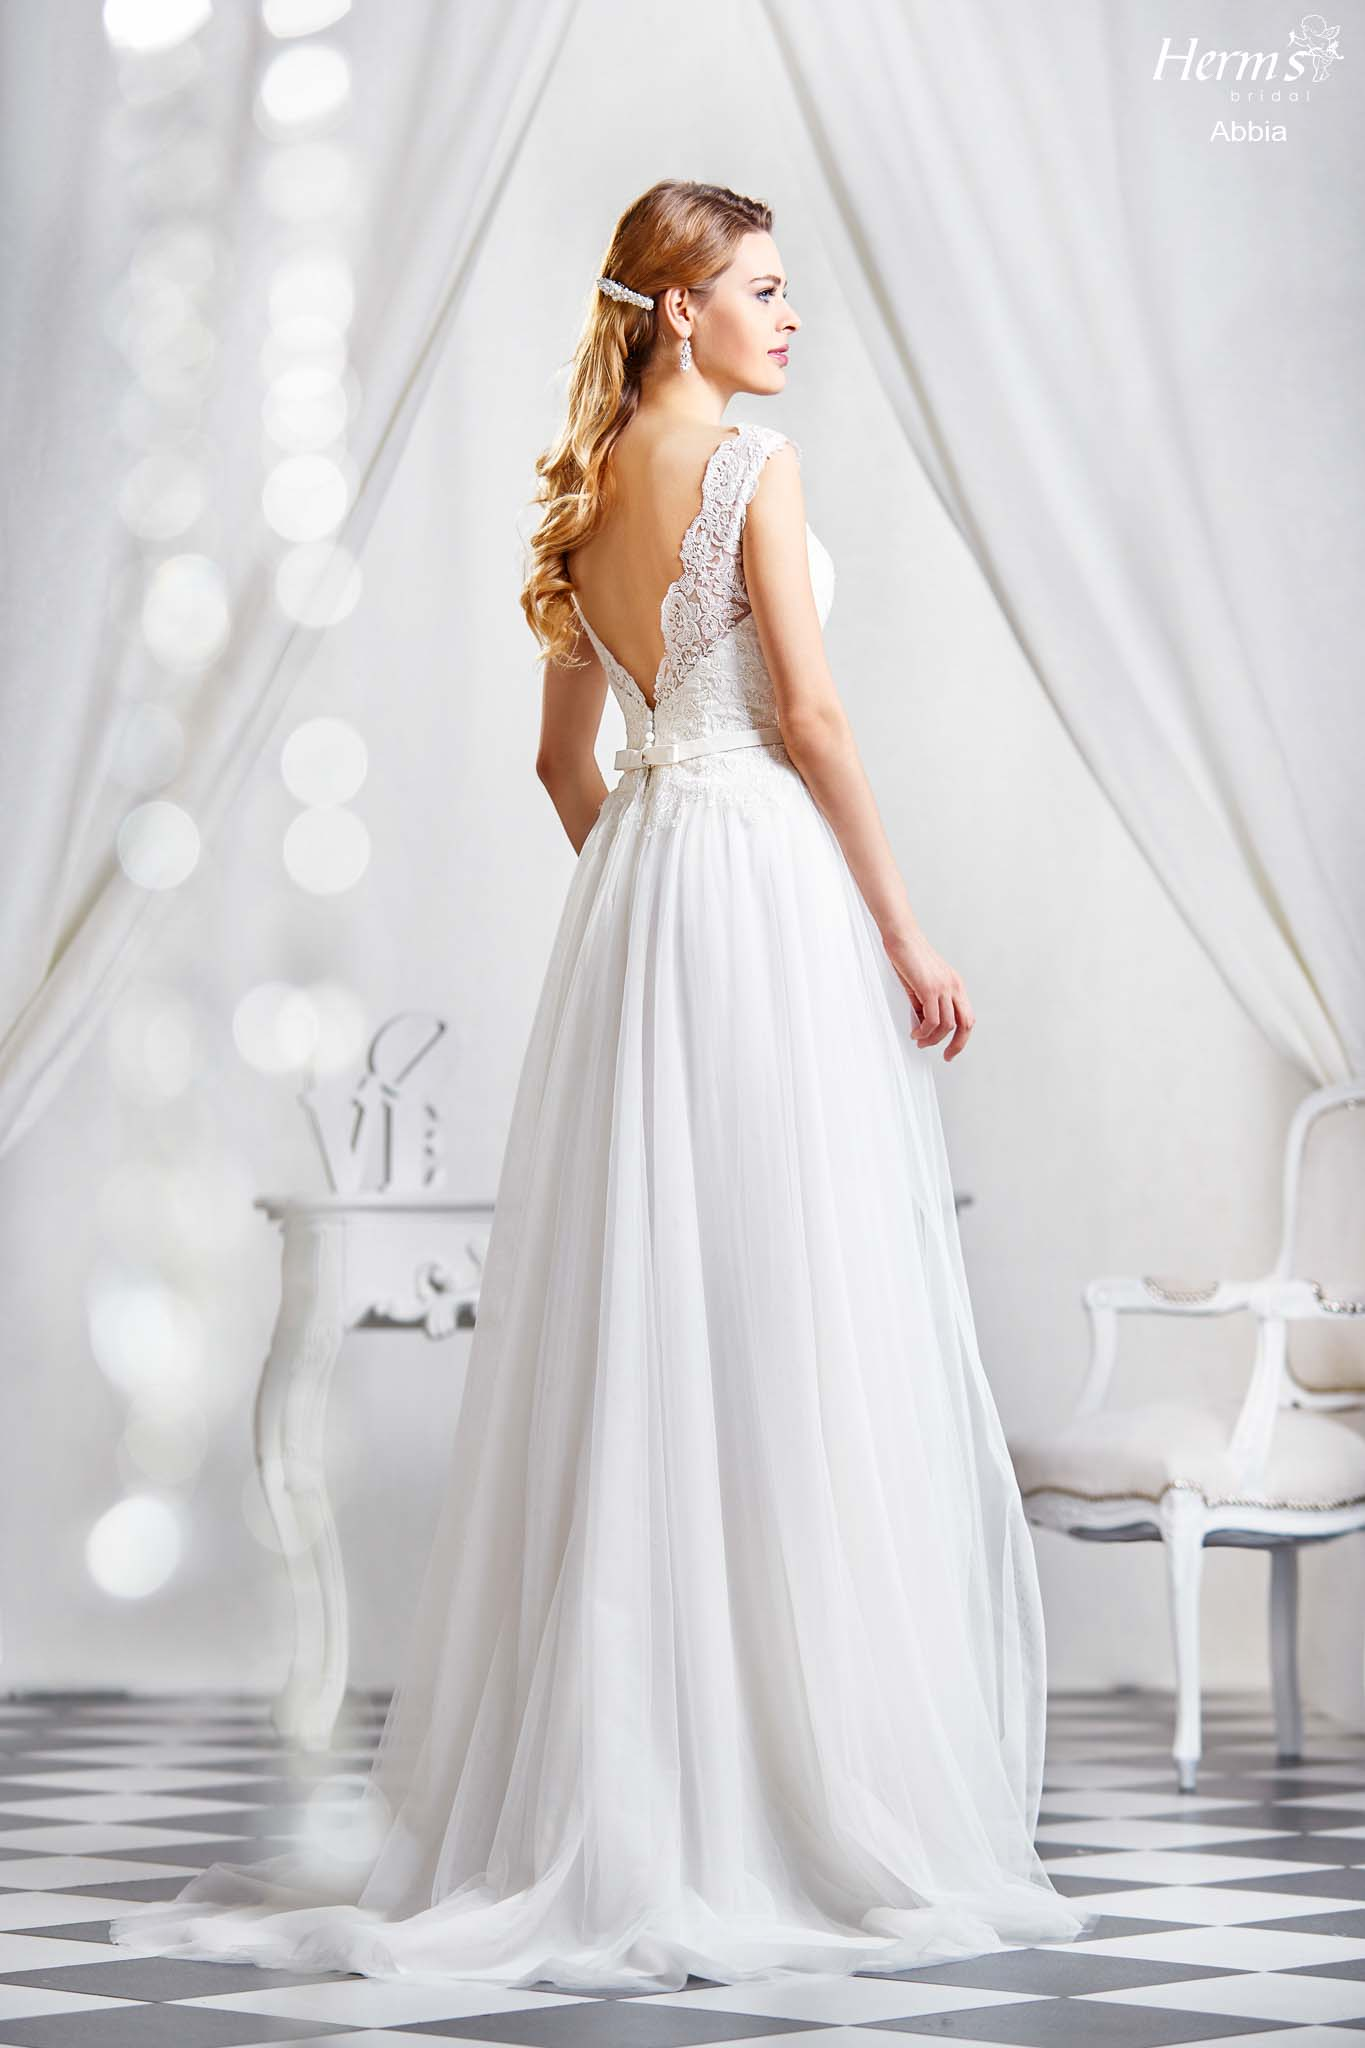 wedding dress Herm's Bridal Abbia